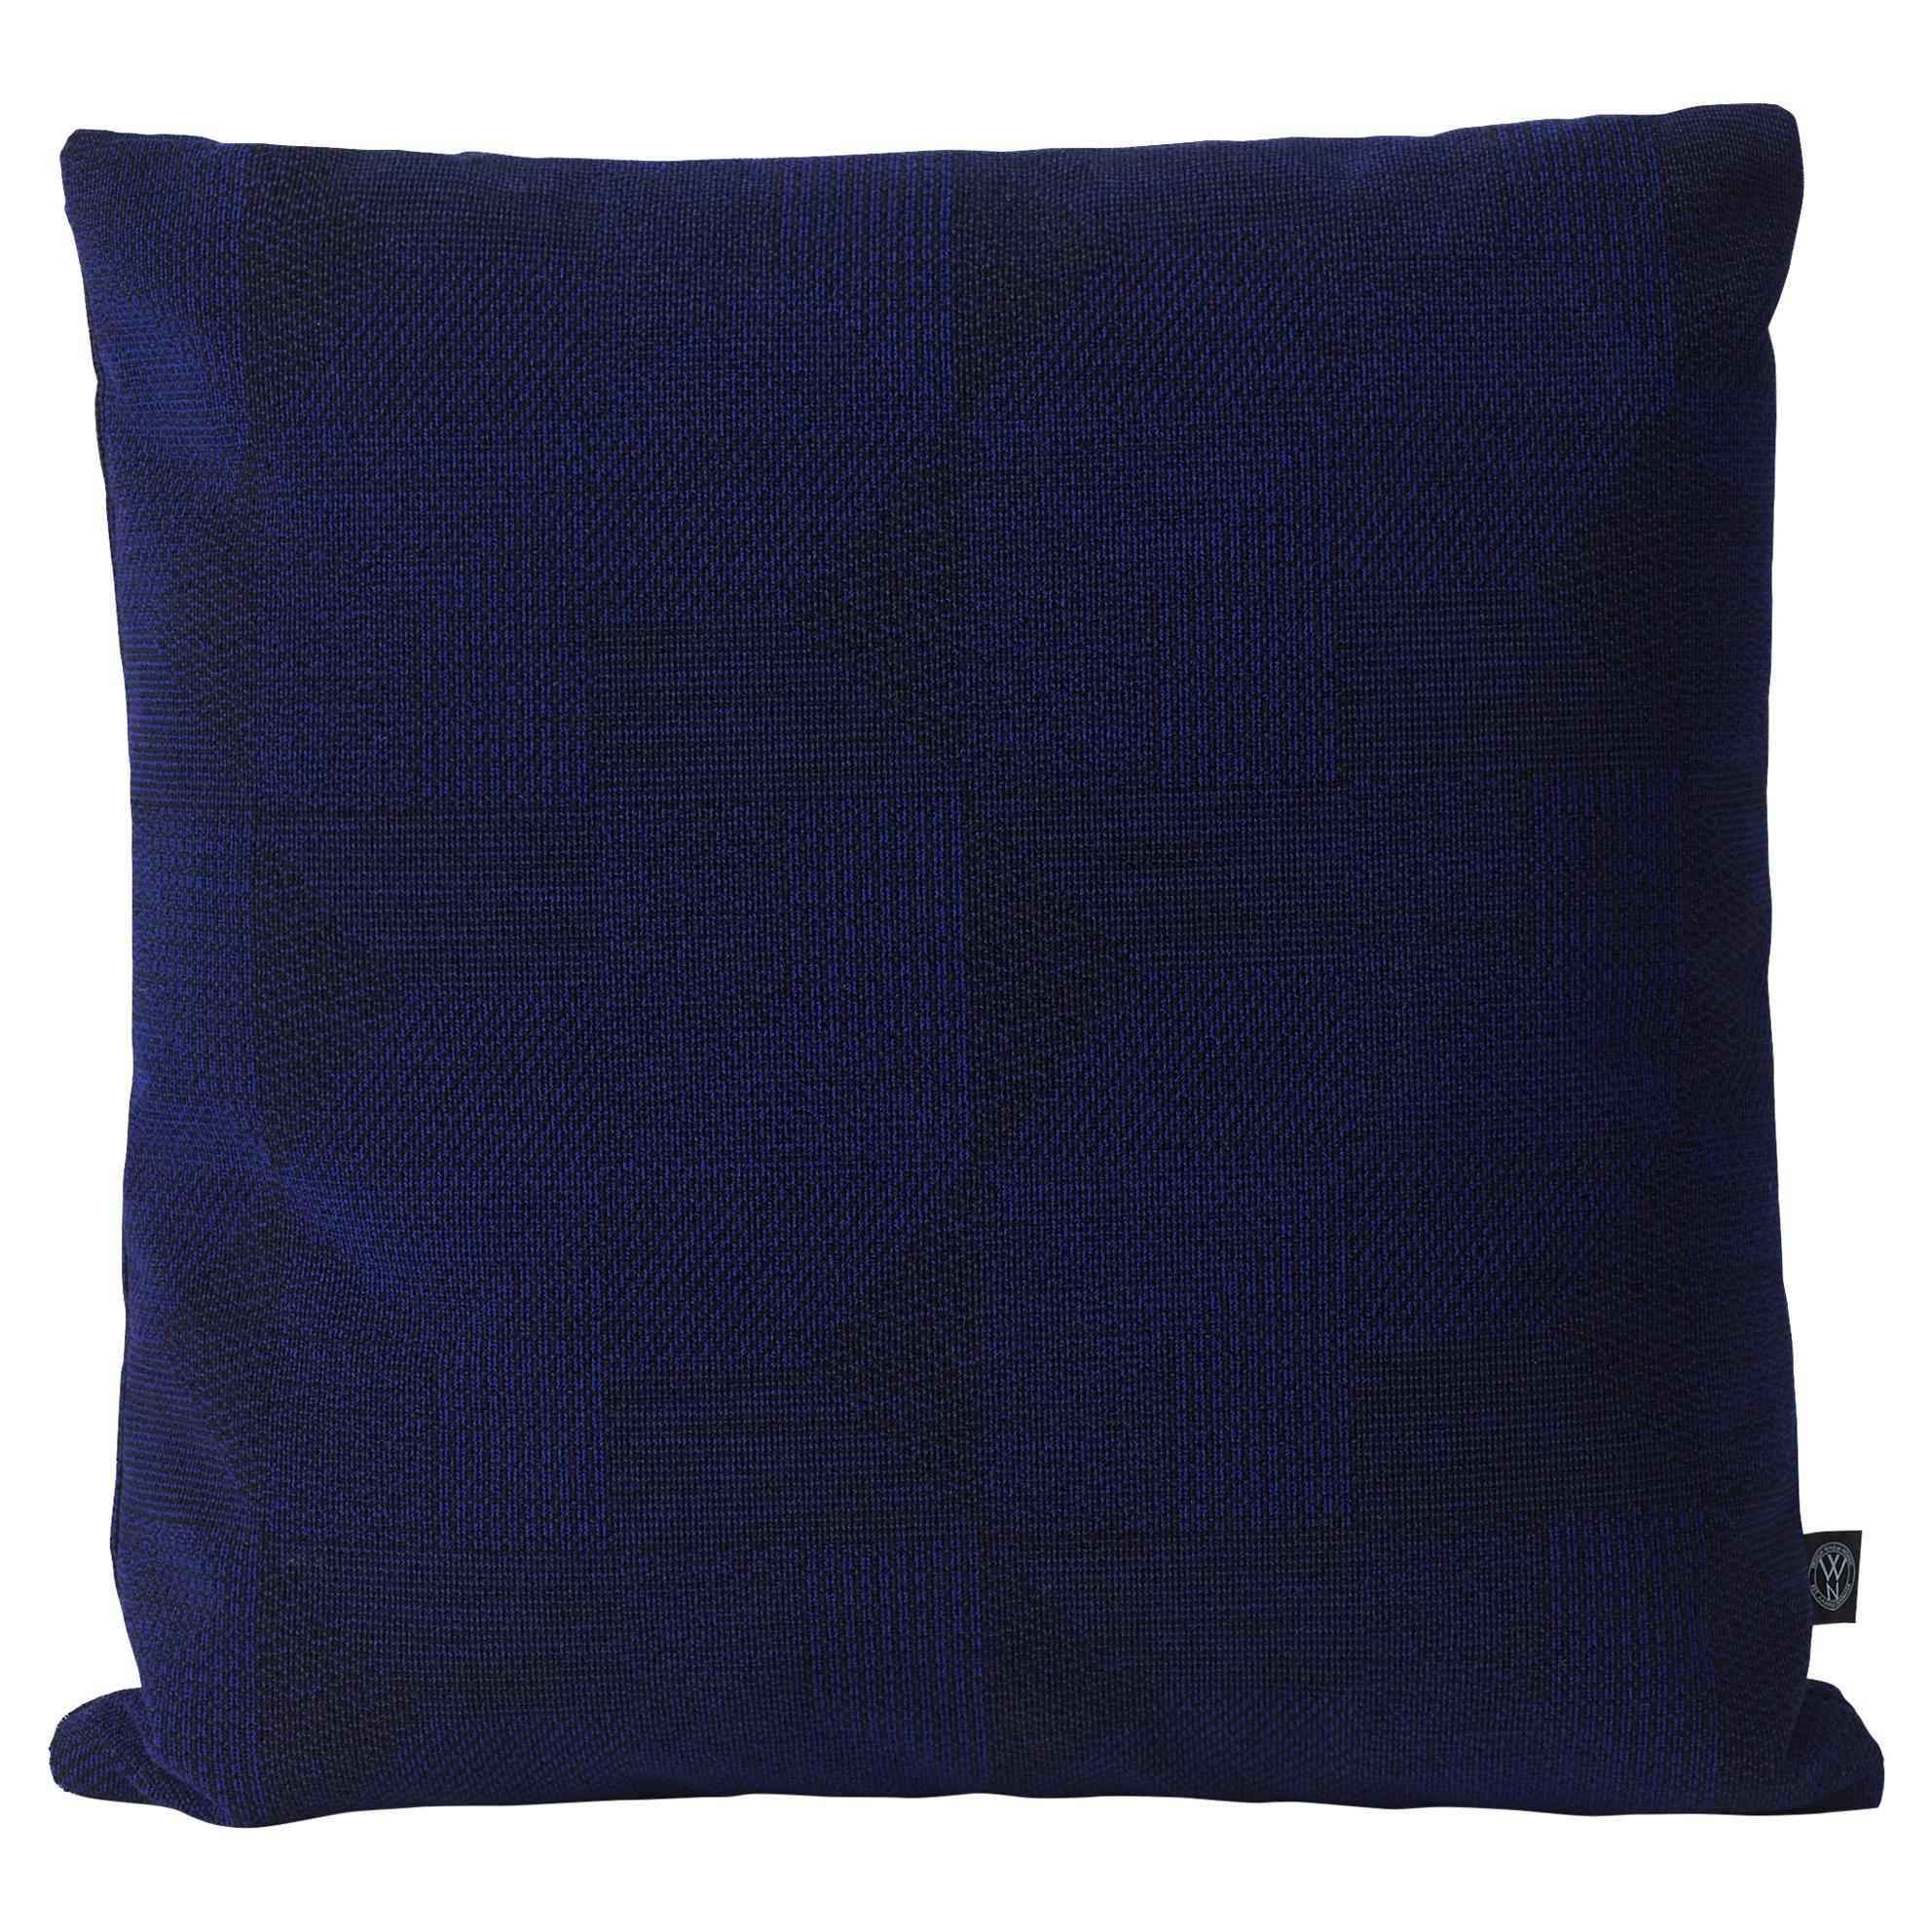 Small Crystal Field Square Cushion or Throw Pillow by Warm Nordic